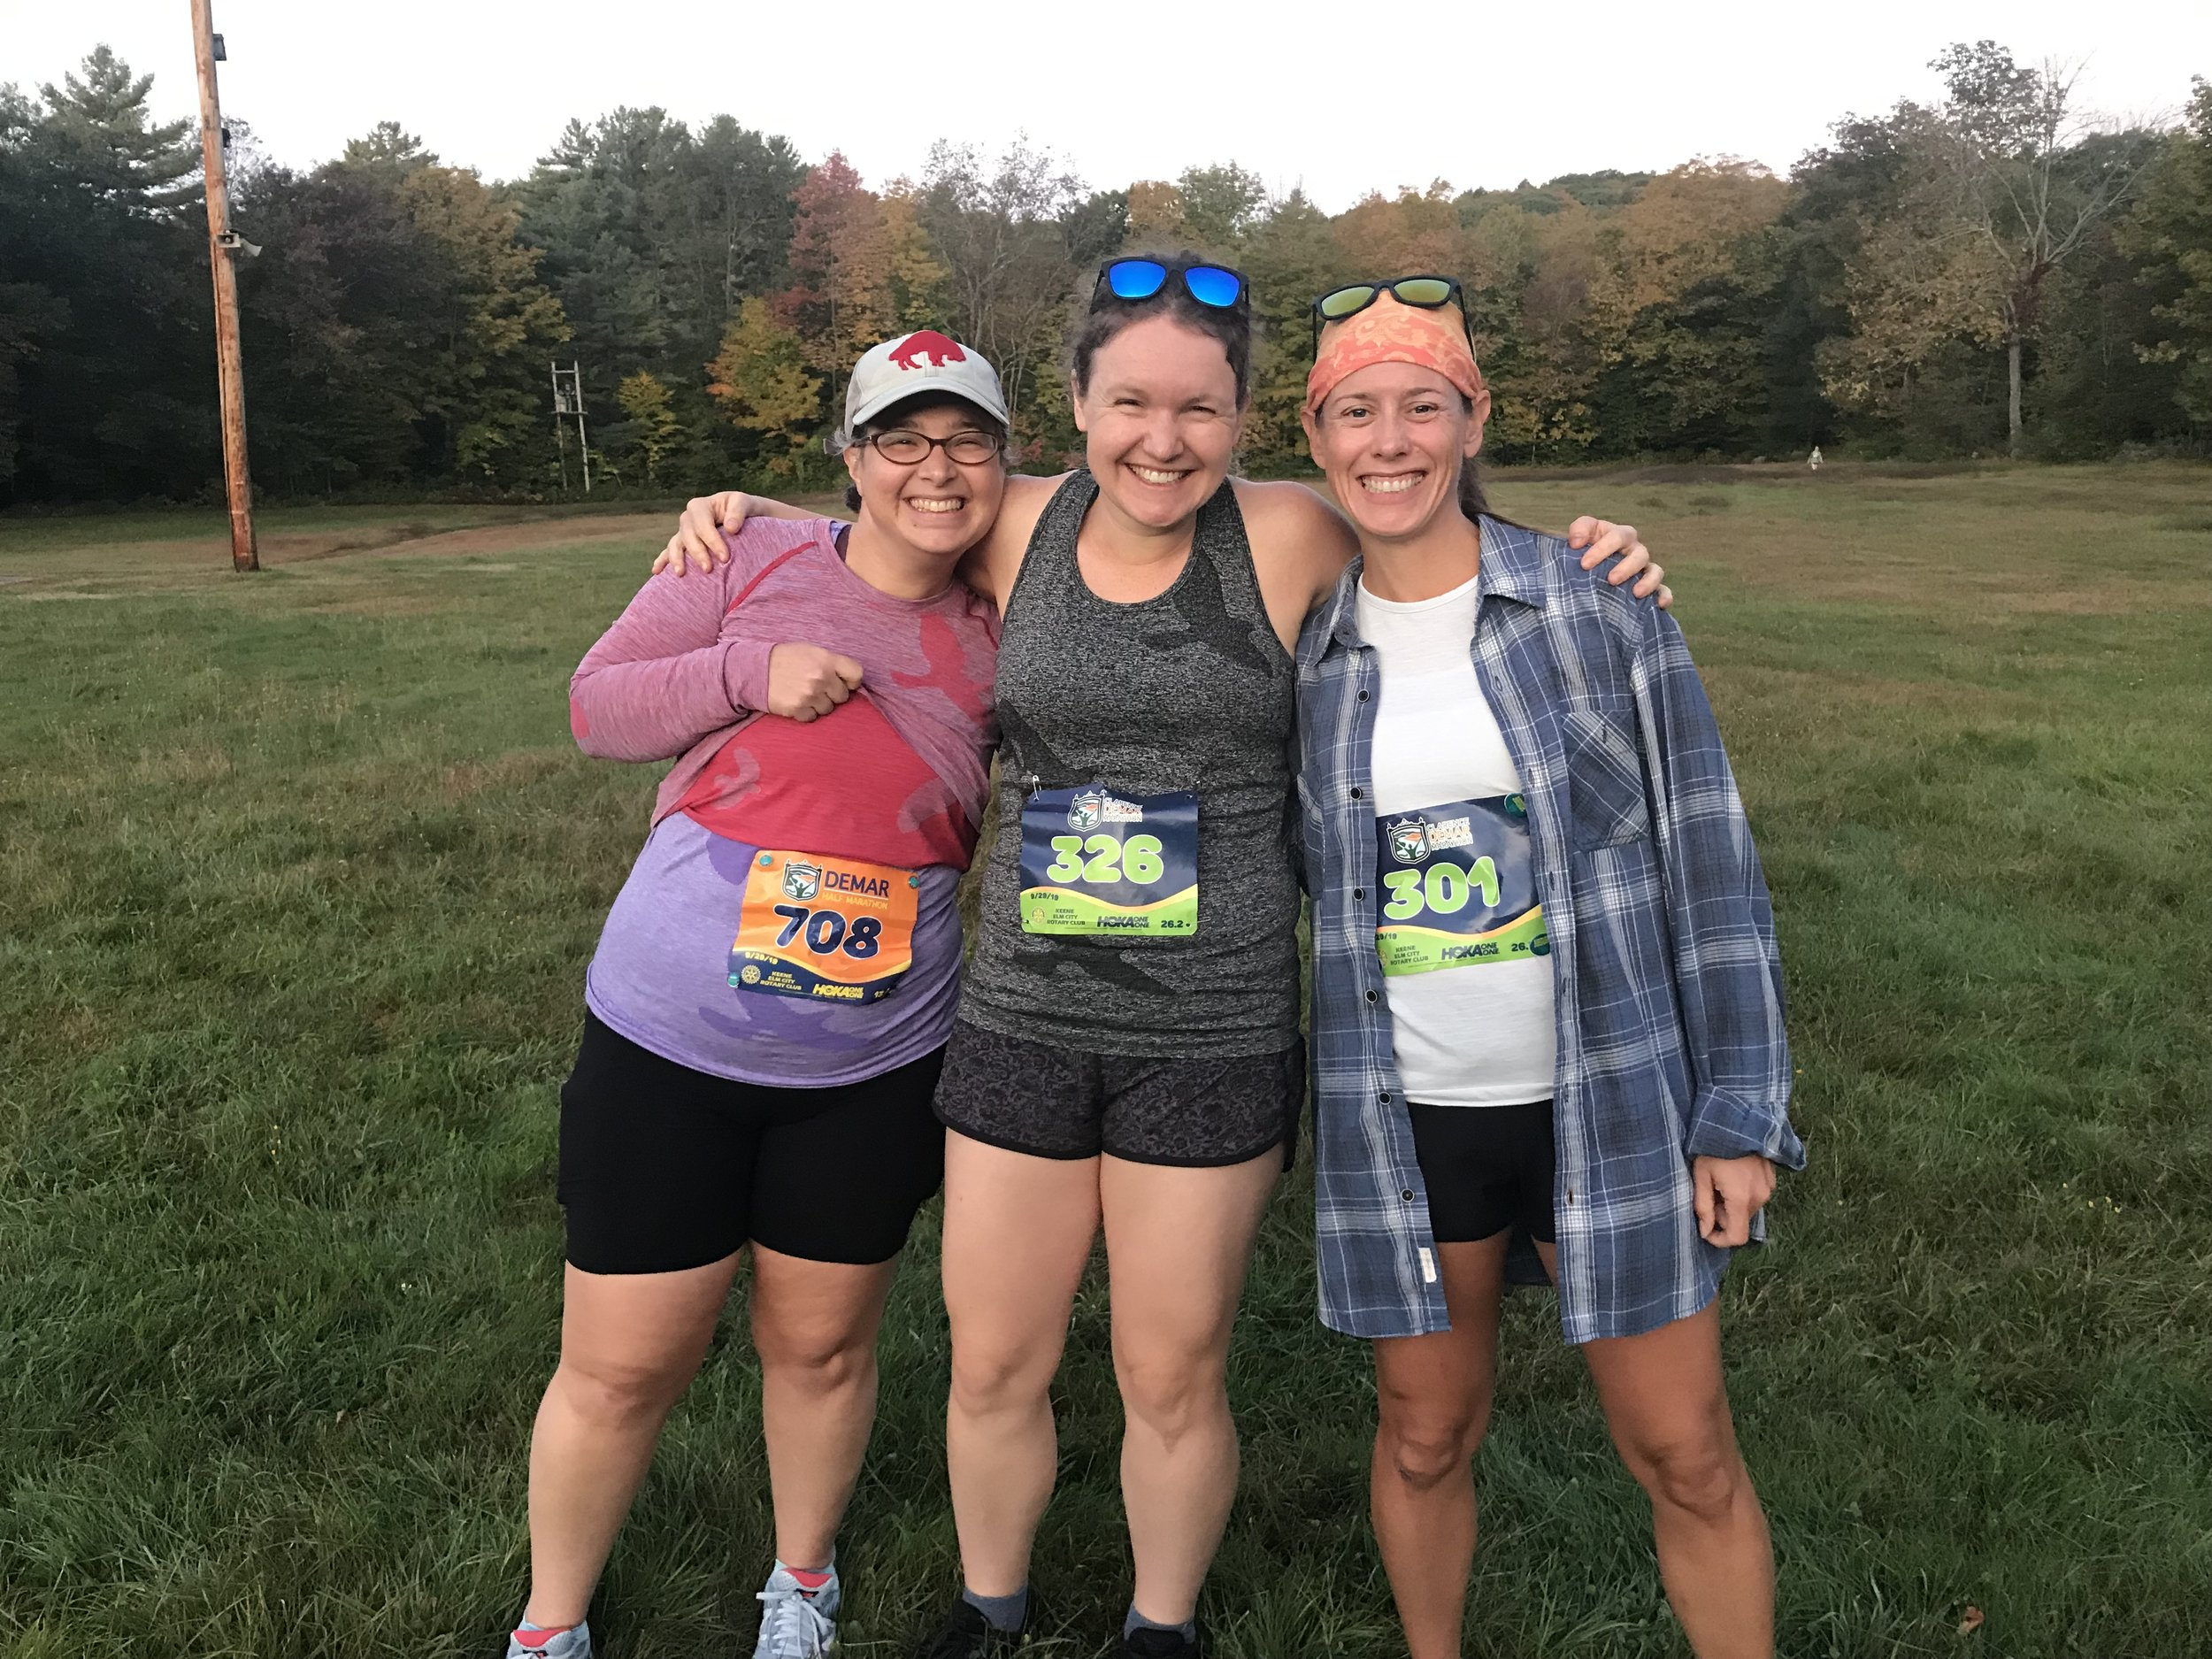 Remember this: happy friends Shara, me, and Lisa, ready for whatever the day would bring. Not pictured was our amazing finish-line cheerer Liz, and I utterly regret not having gotten a decent photo of all four of us.